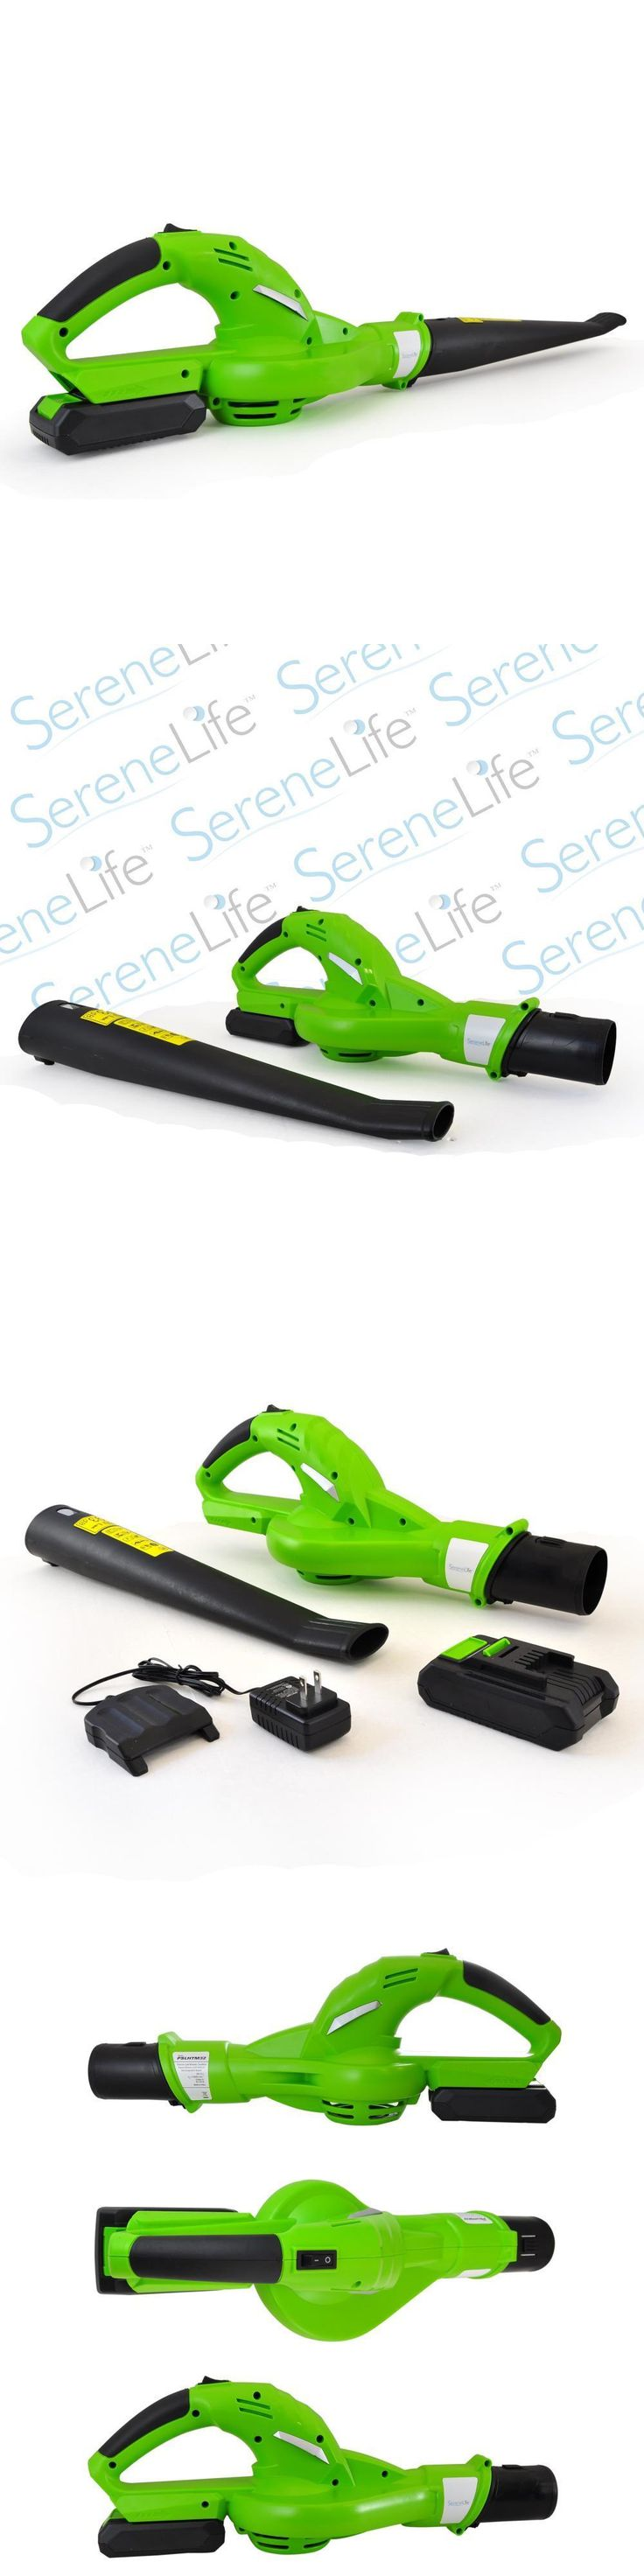 Leaf Blowers and Vacuums 71273: Serene-Life Pslhtm32 Cordless Electric Leaf Blower, 18V Rechargeable Battery -> BUY IT NOW ONLY: $79.99 on eBay!